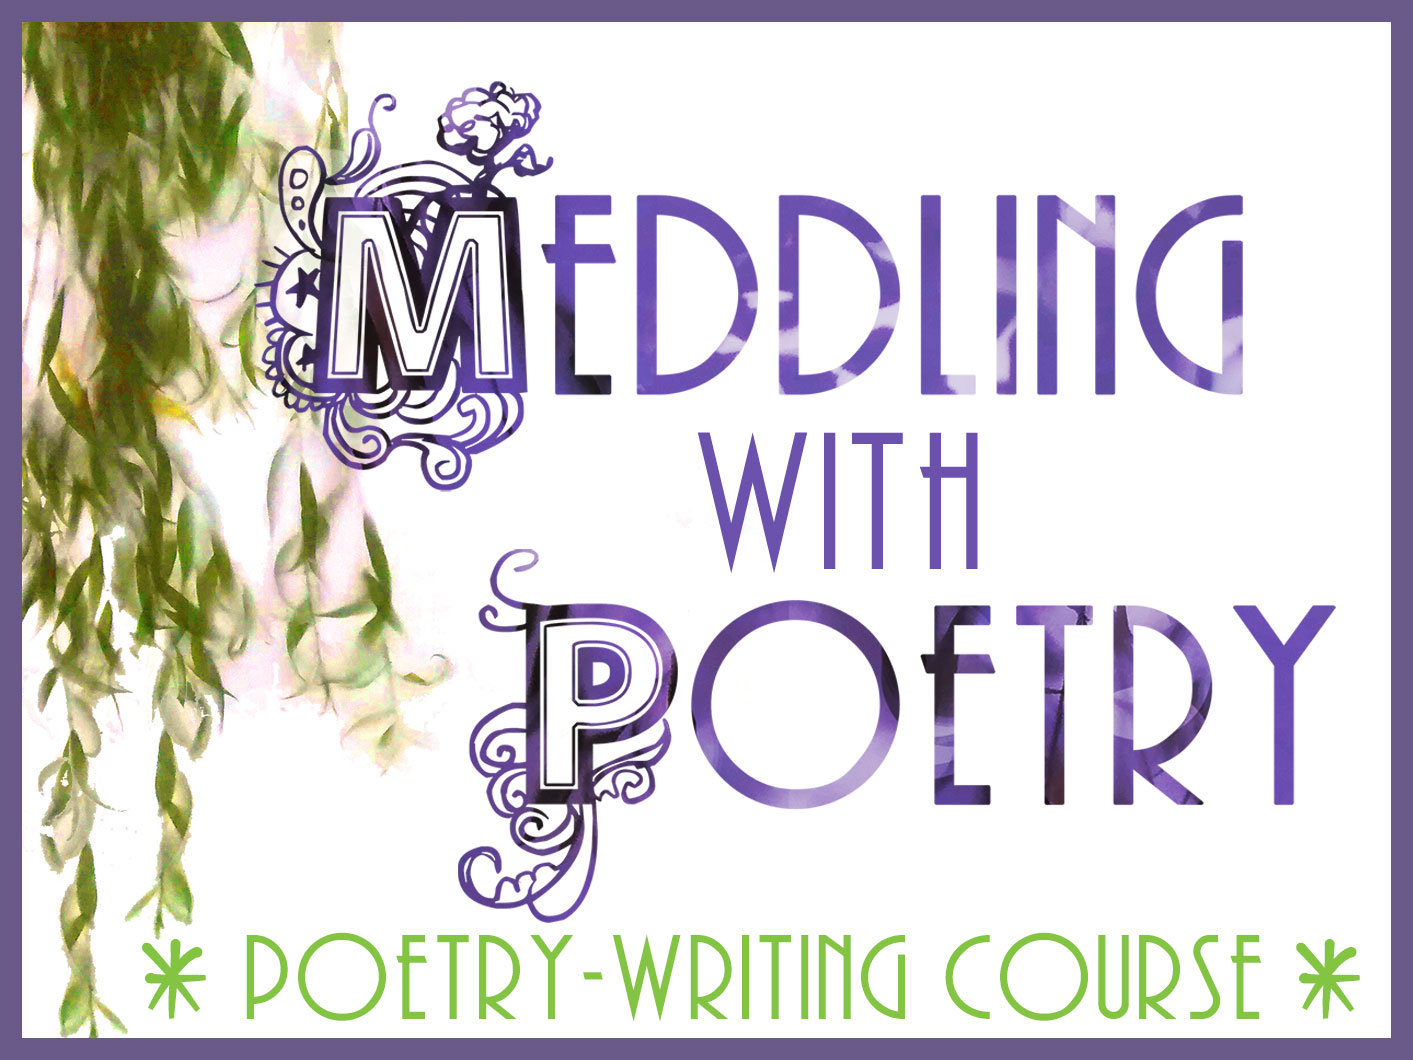 Meddling with Poetry: new course